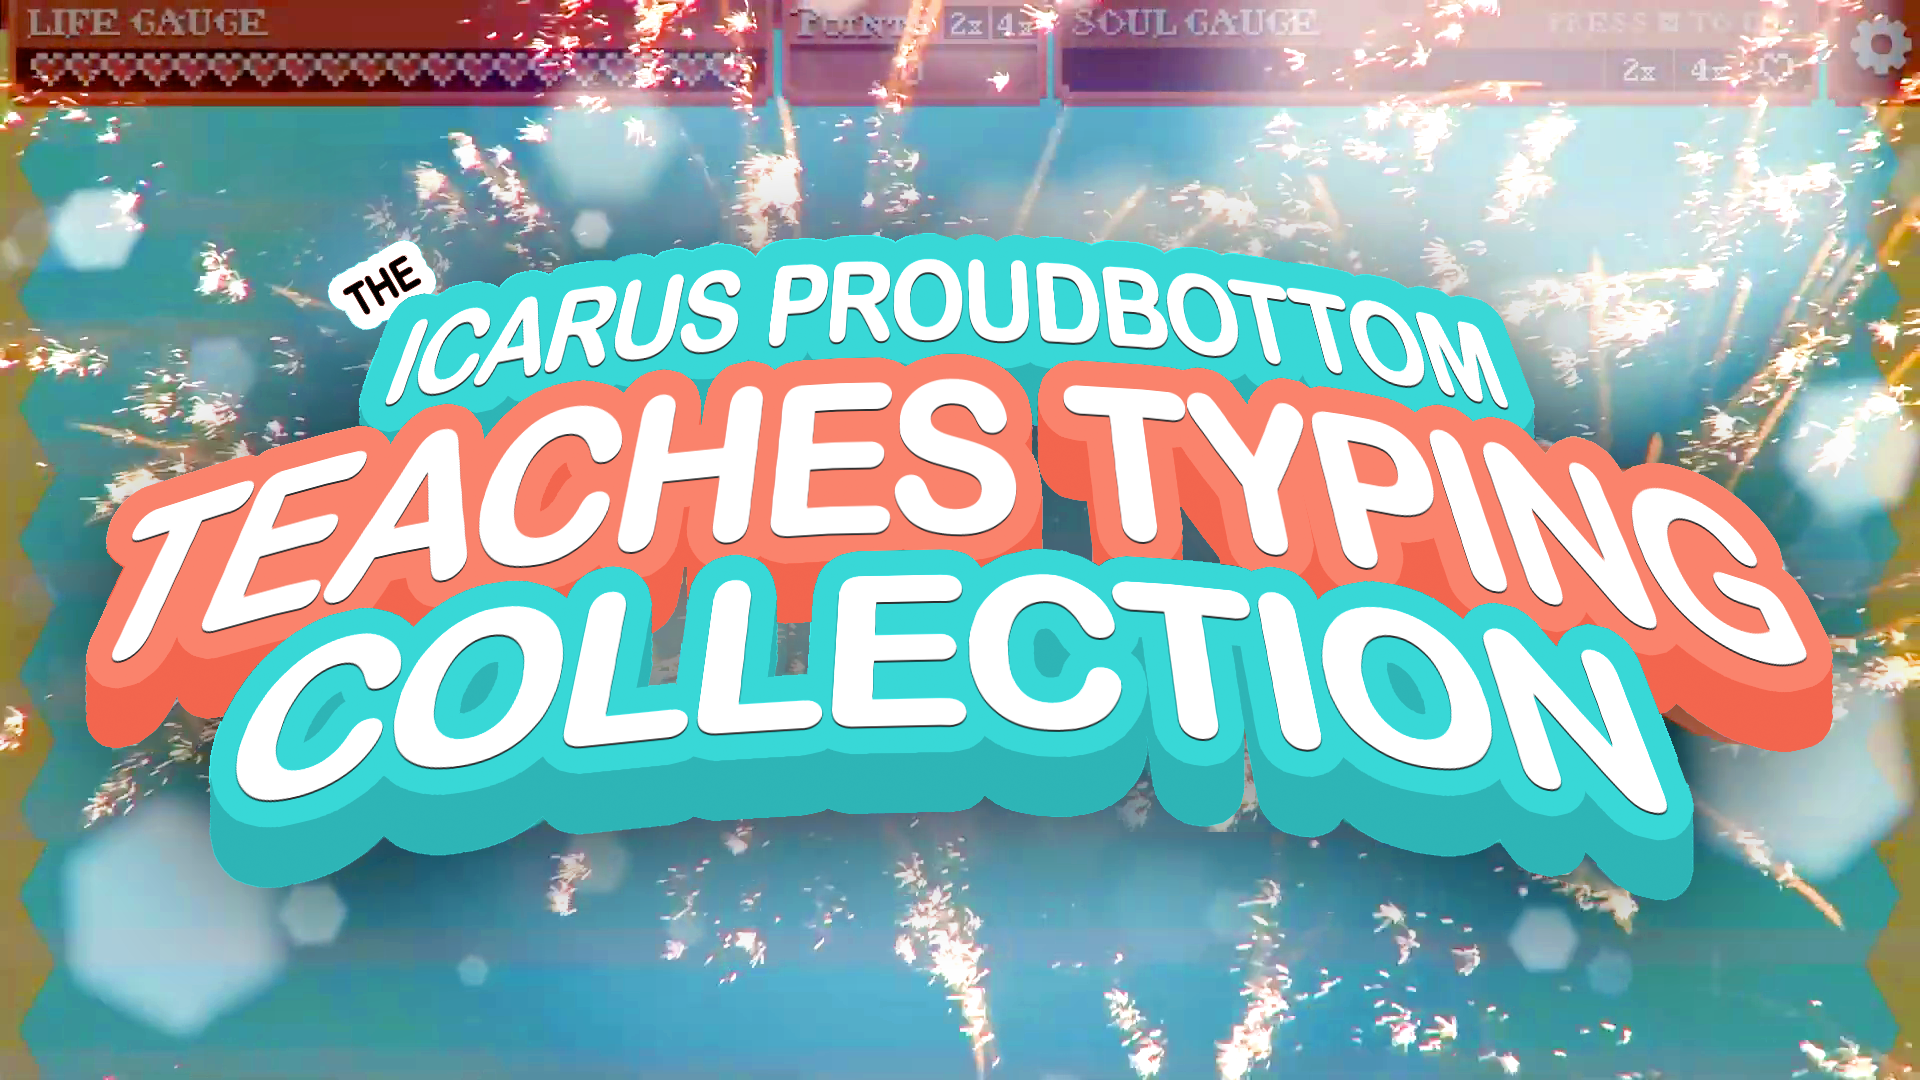 Icarus Proudbottom Teaches Typing Collection